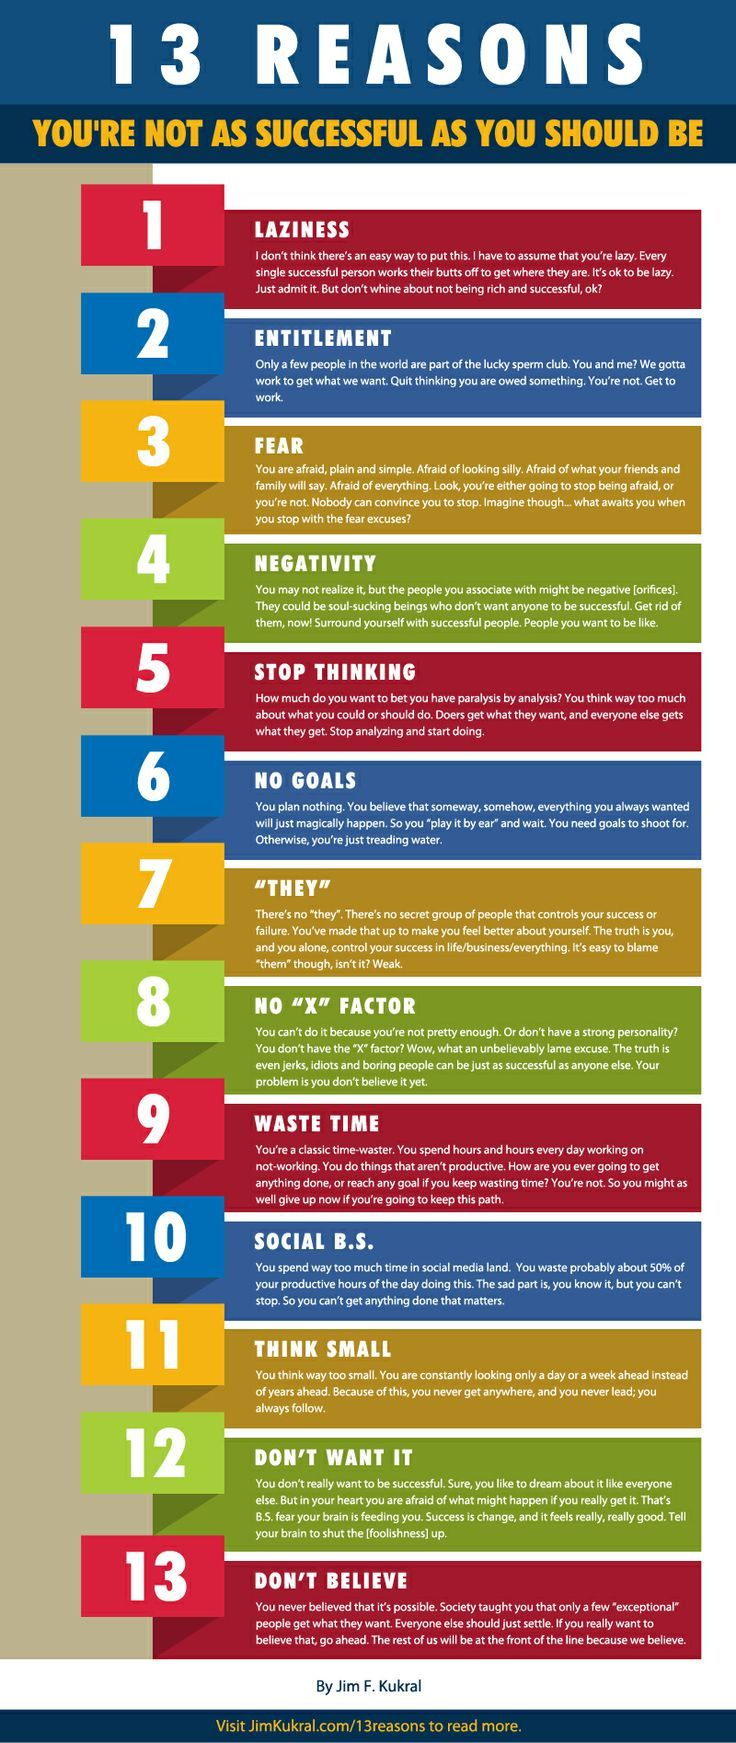 13 Reasons You Aren't As Successful As You Should Be #SmallBusinessSuccess Small business success tips #success